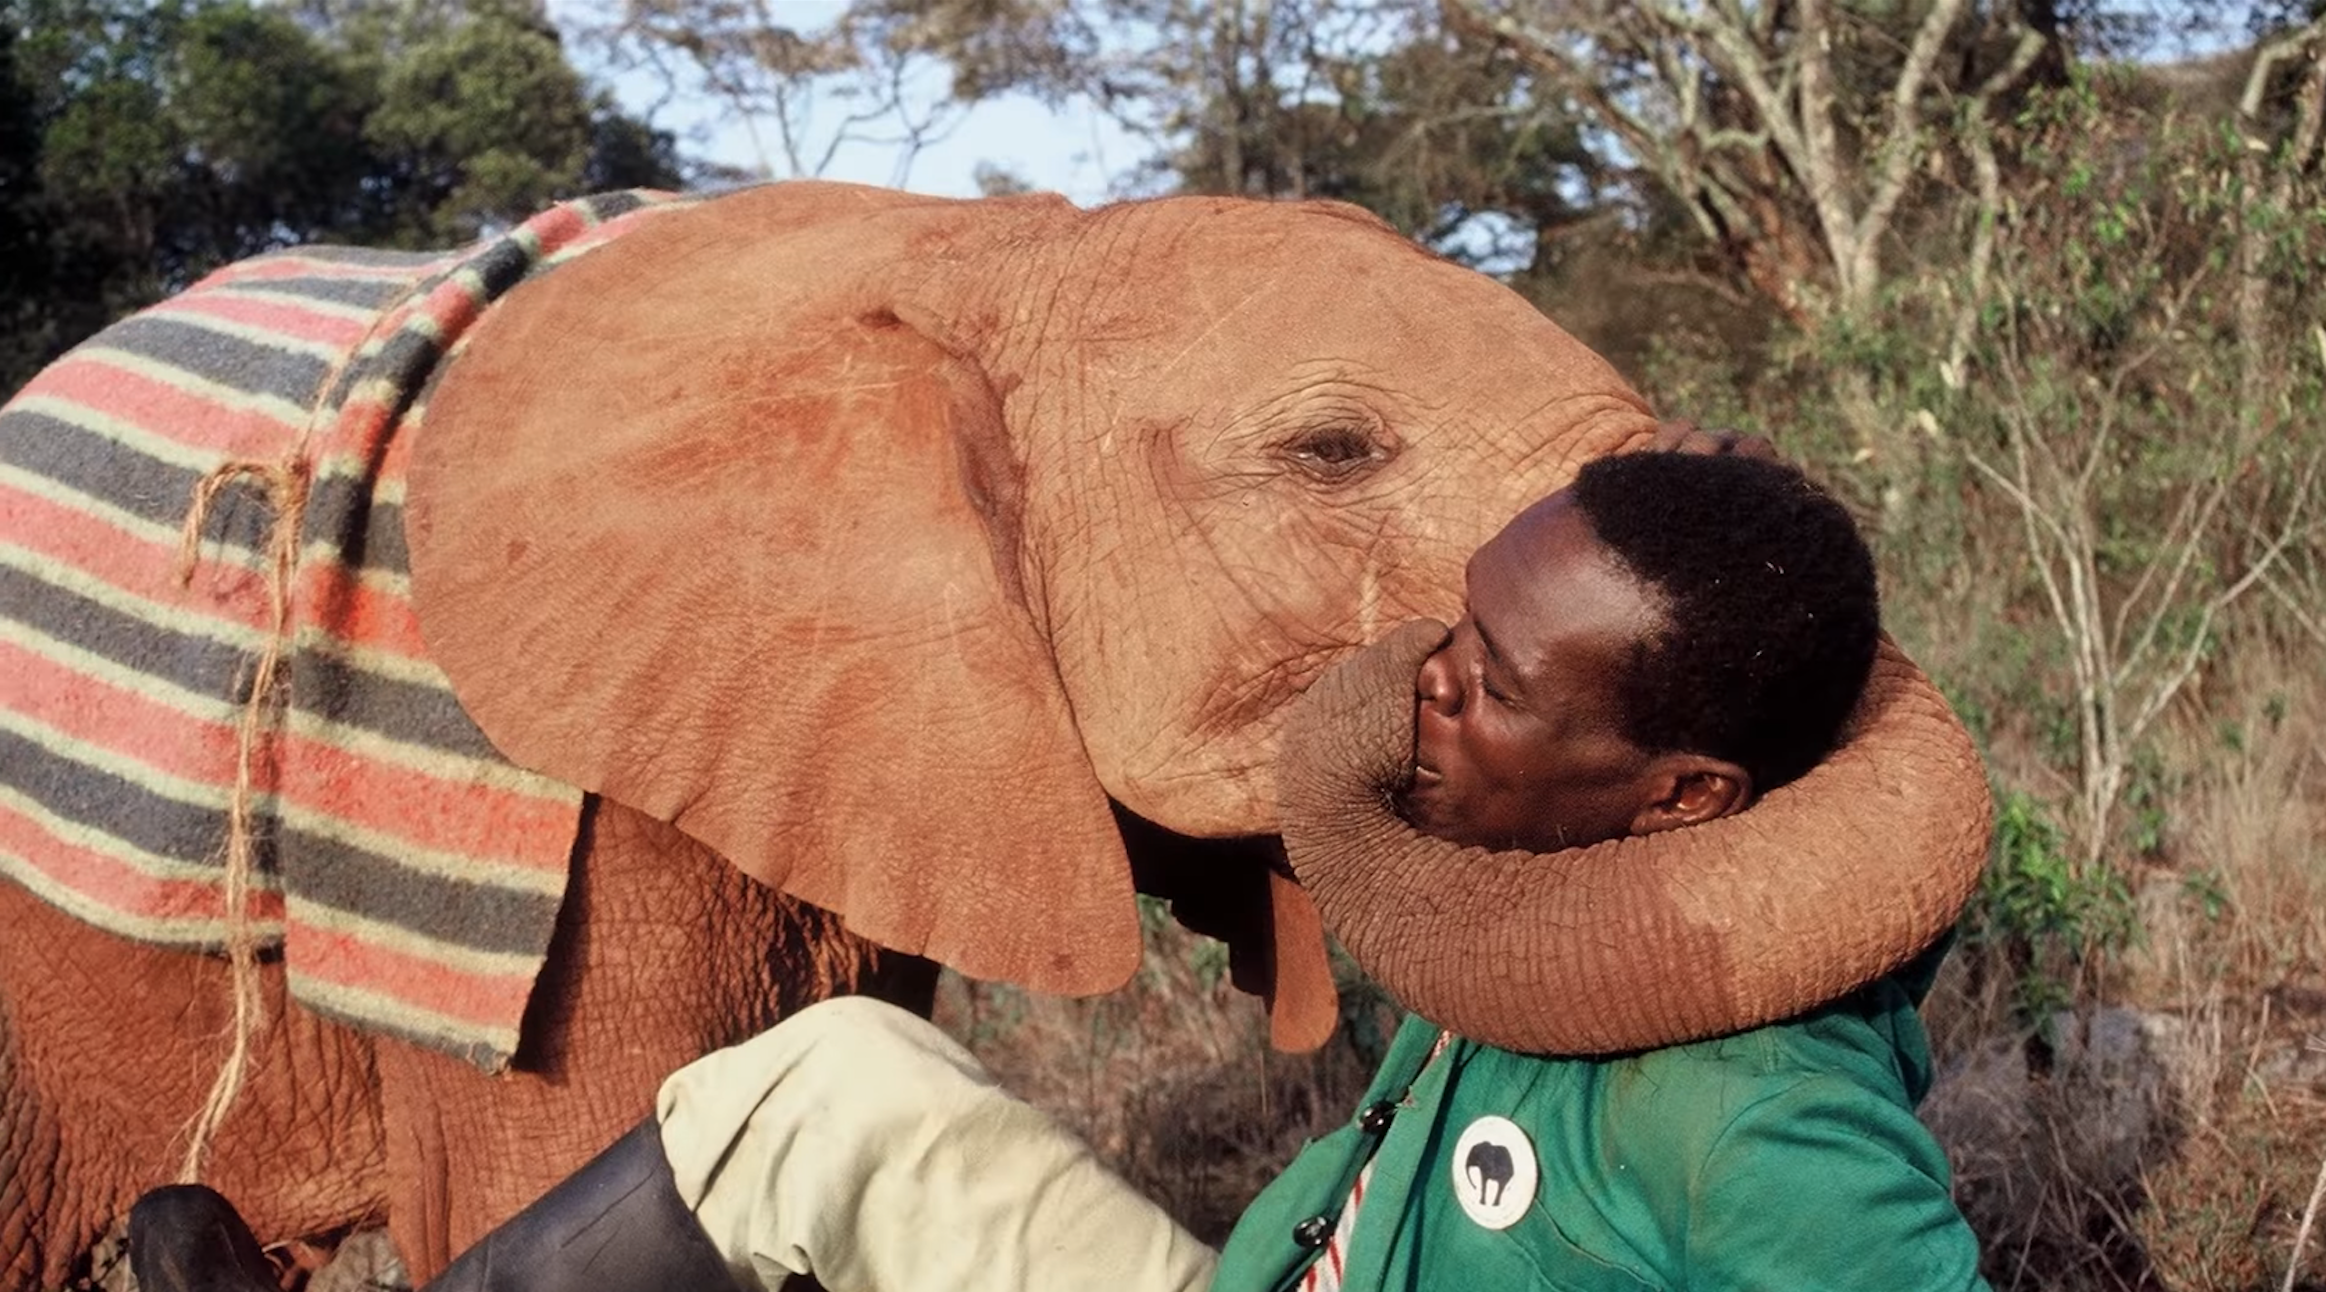 THE SHELDRICK TRUST